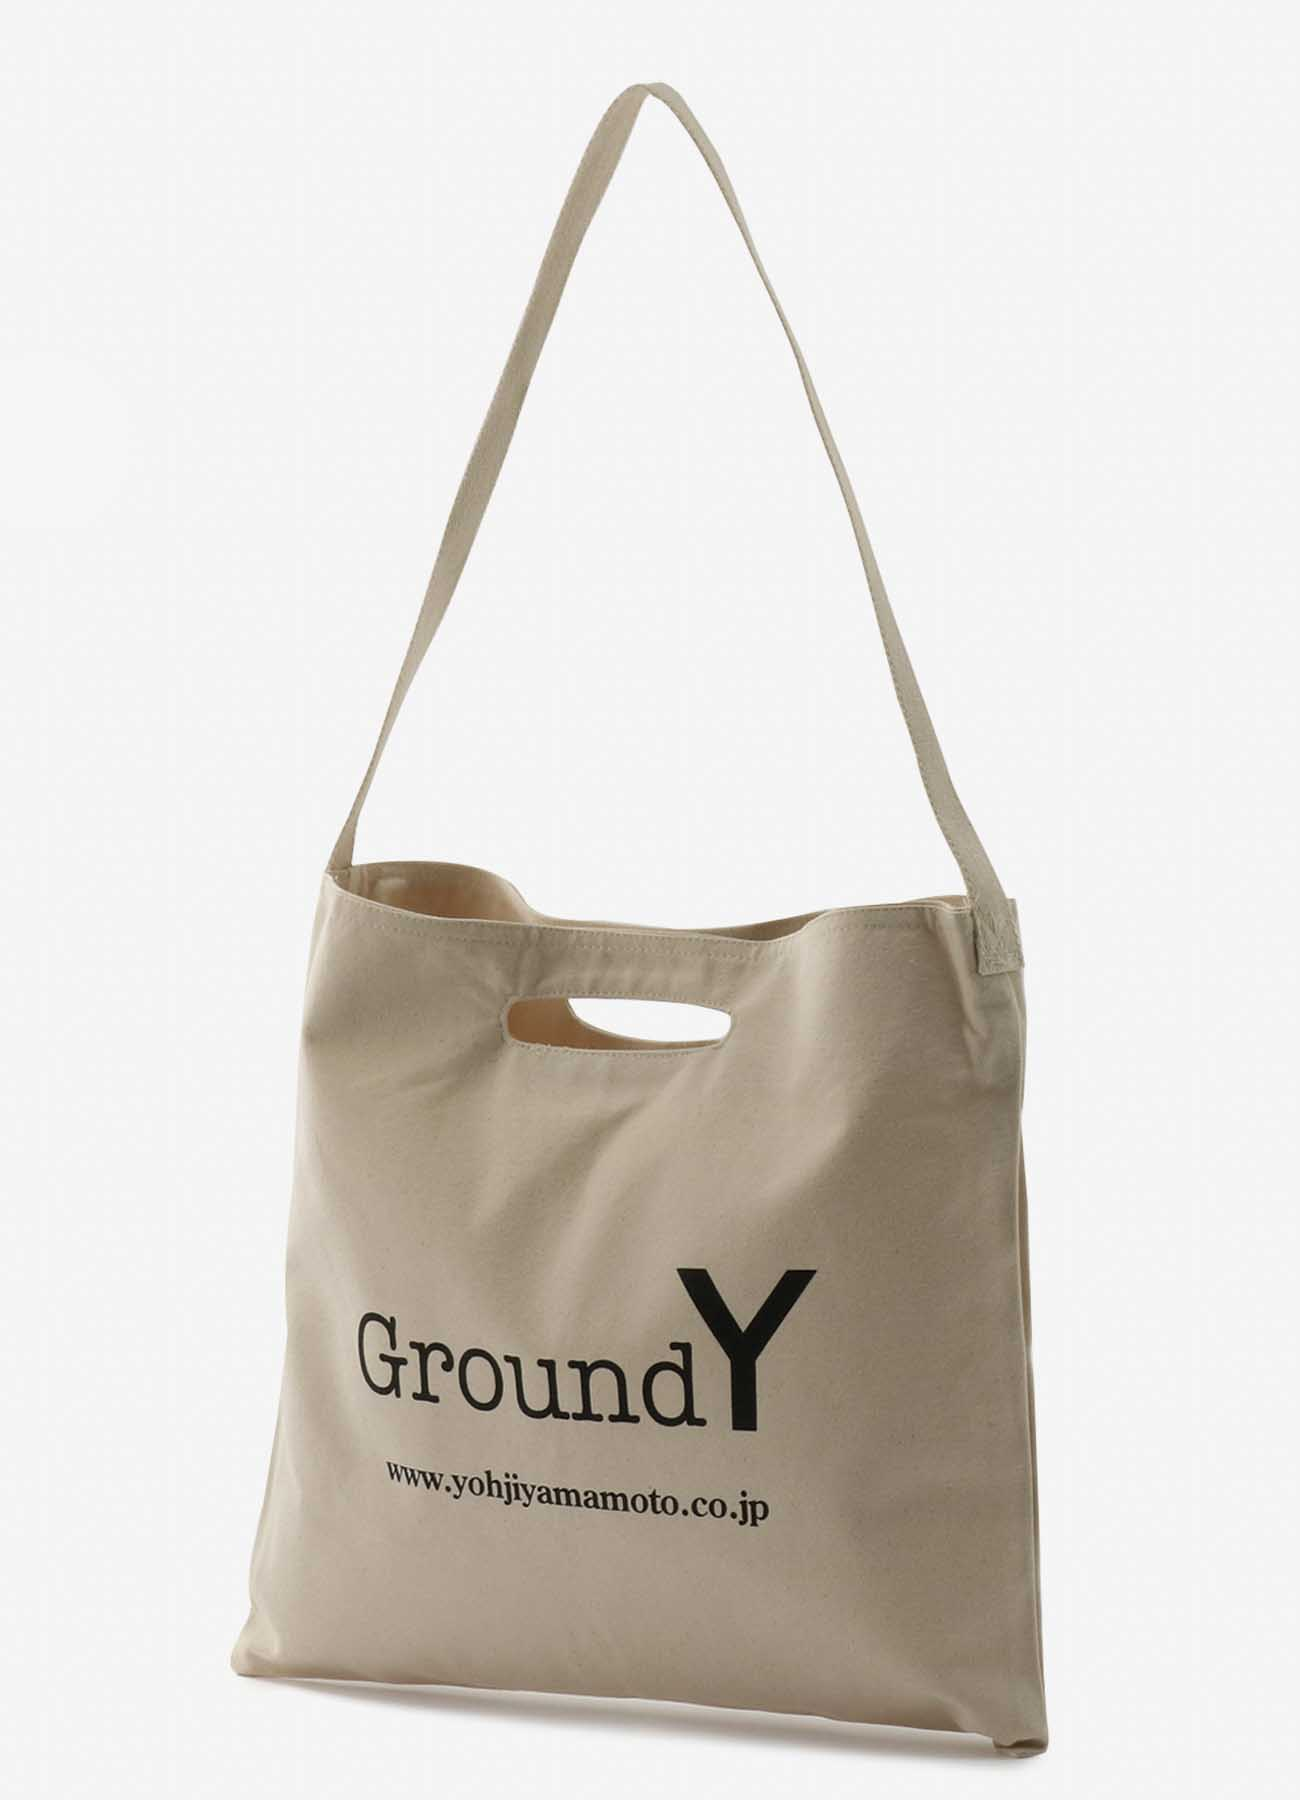 GroundY LOGO-3WAY 帆布包